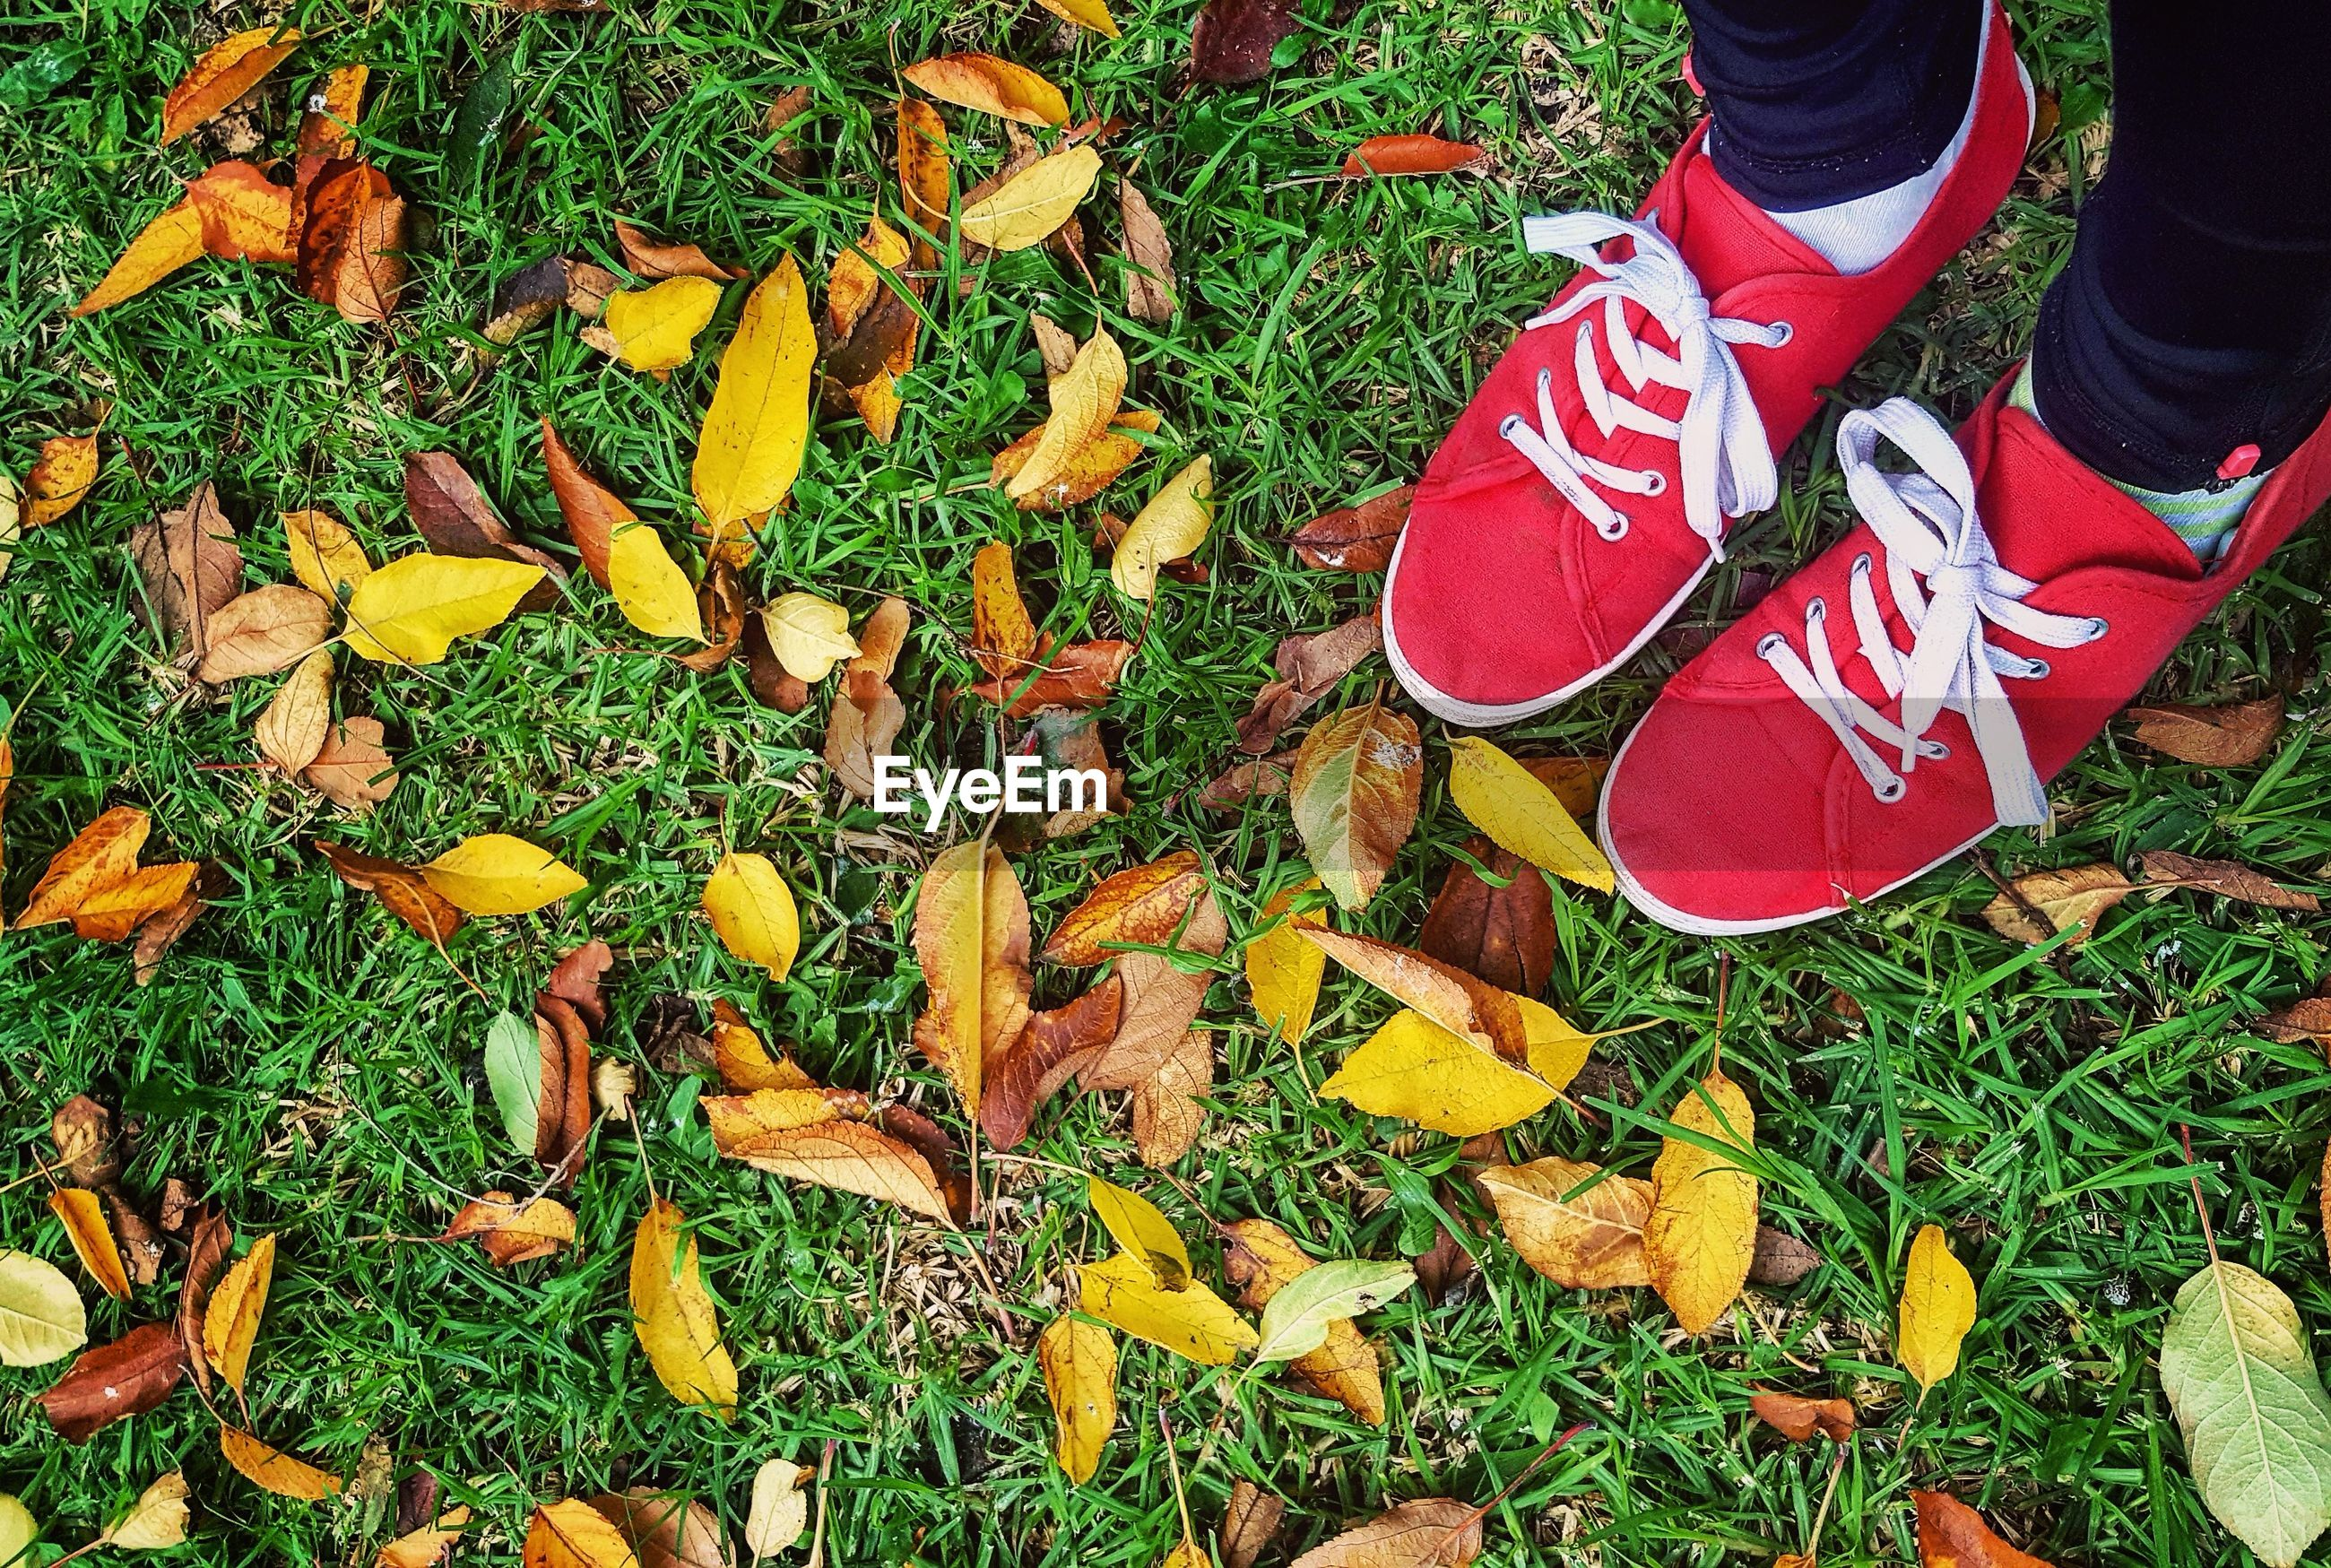 Low section of person wearing shoes while standing on grassy field during autumn